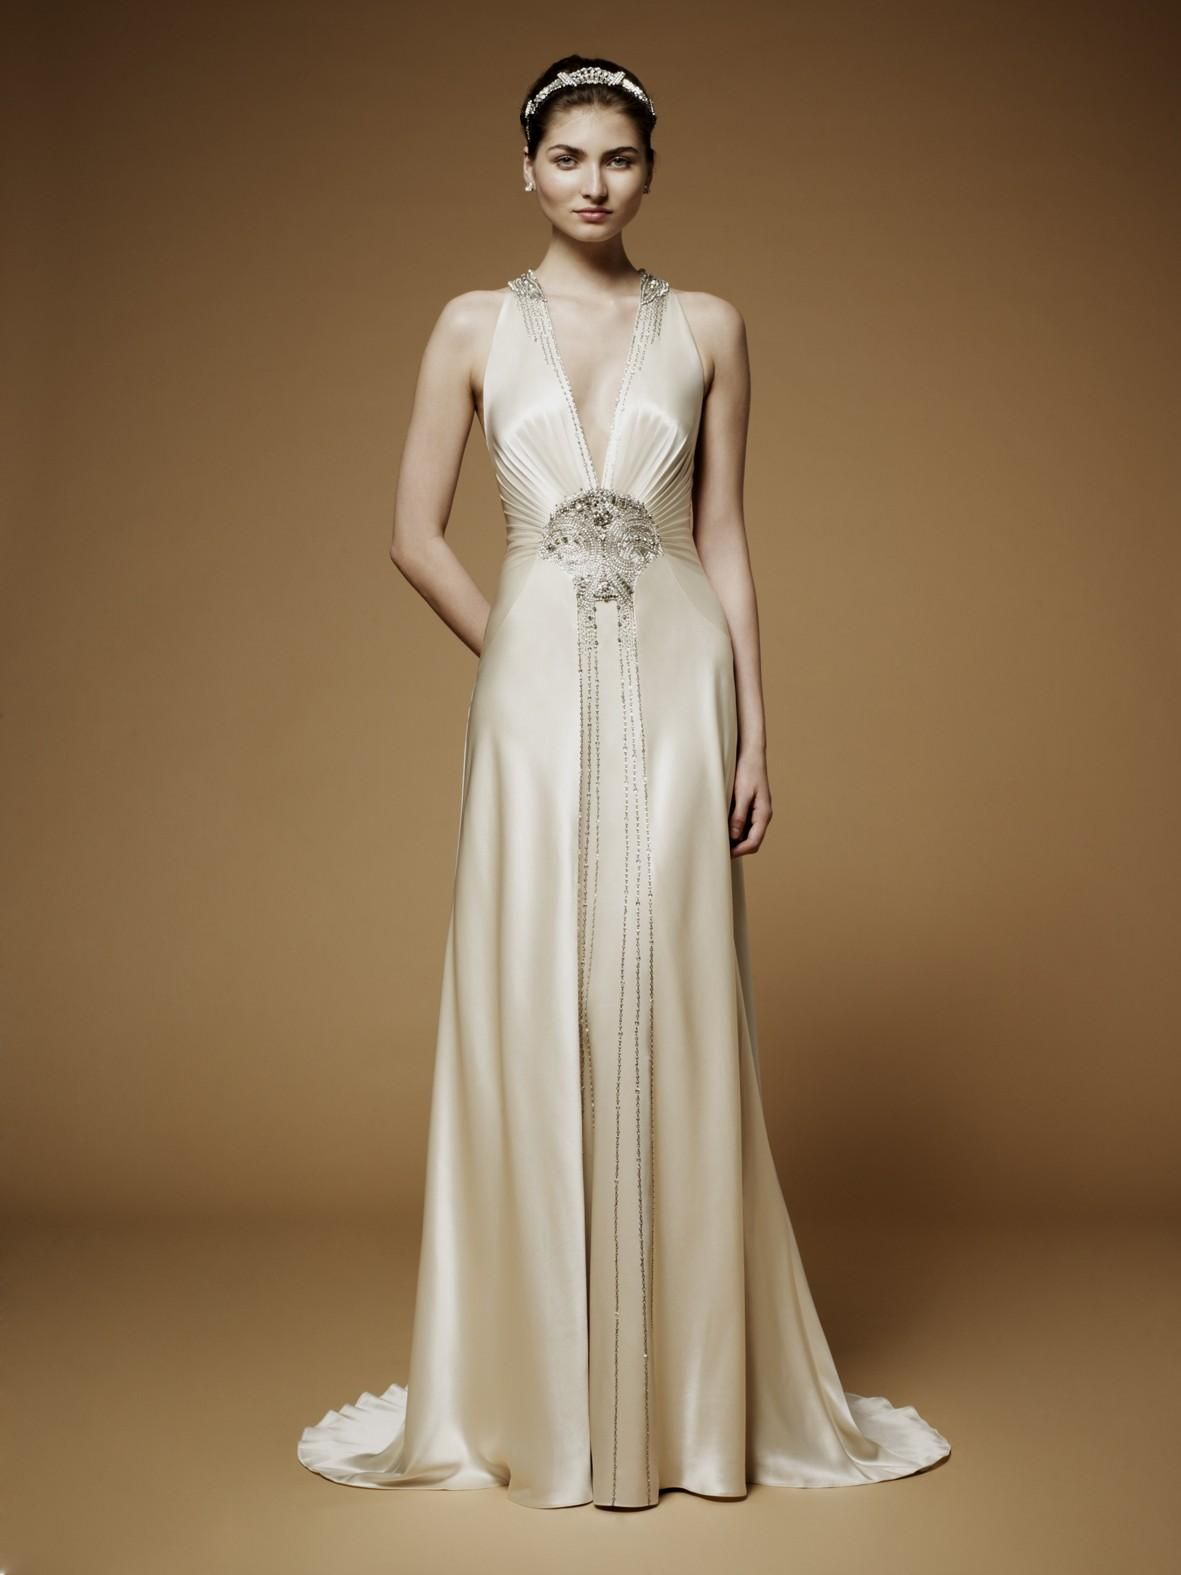 The great gatsby art deco wedding inspiration lokis wedding today what i have in box of treasure for you is original and elegant art deco bridesmaid dresses ombrellifo Image collections